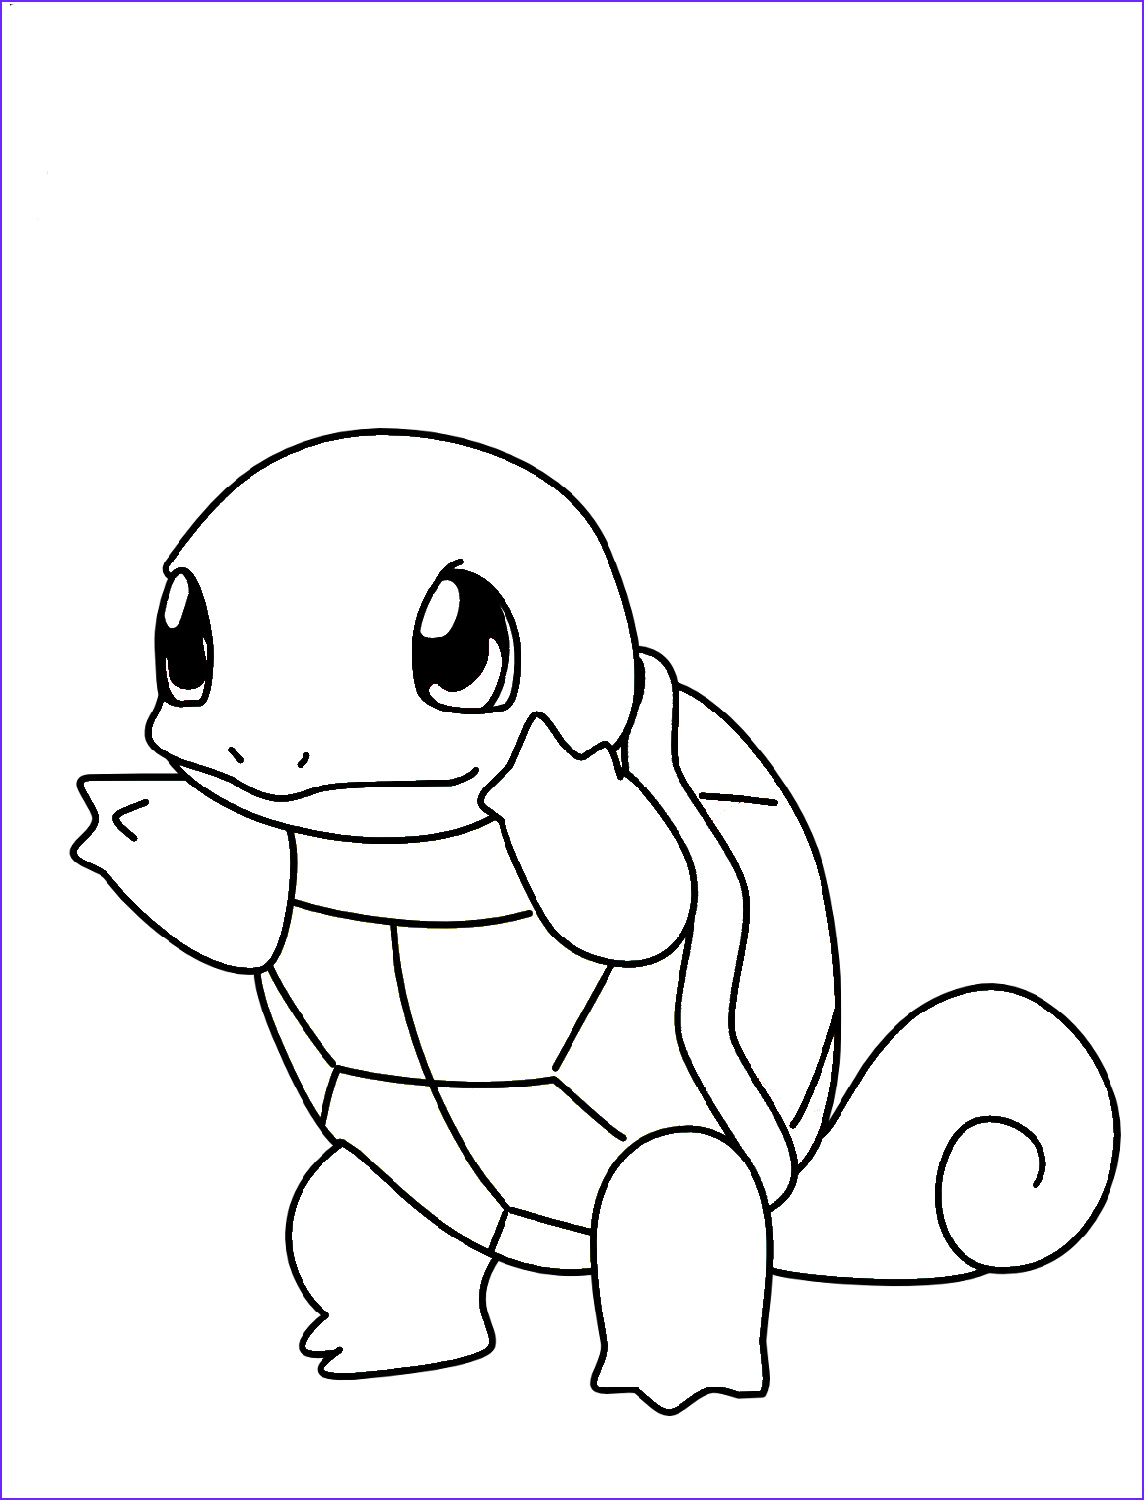 Squirtle Coloring Page Beautiful Photos Squirtle Coloring Pages Pokemon 2019